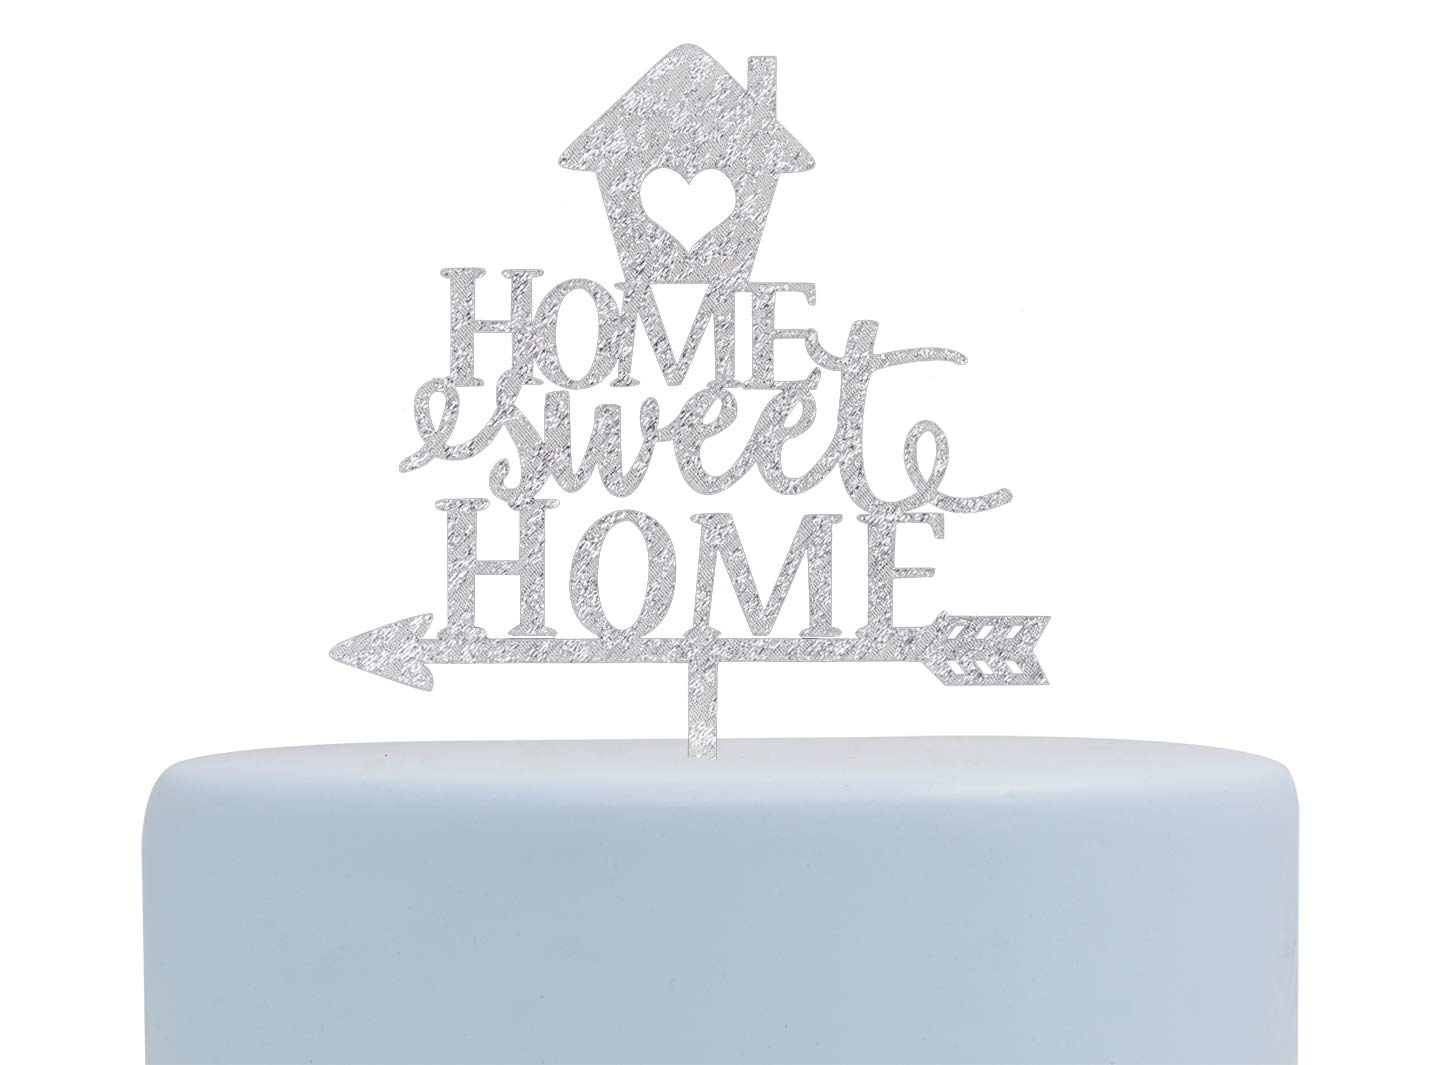 Home Sweet Home Glitter Arcylic Cake Topper, Welcome Home Decoration,Housewarming Party Decorations (Silver)